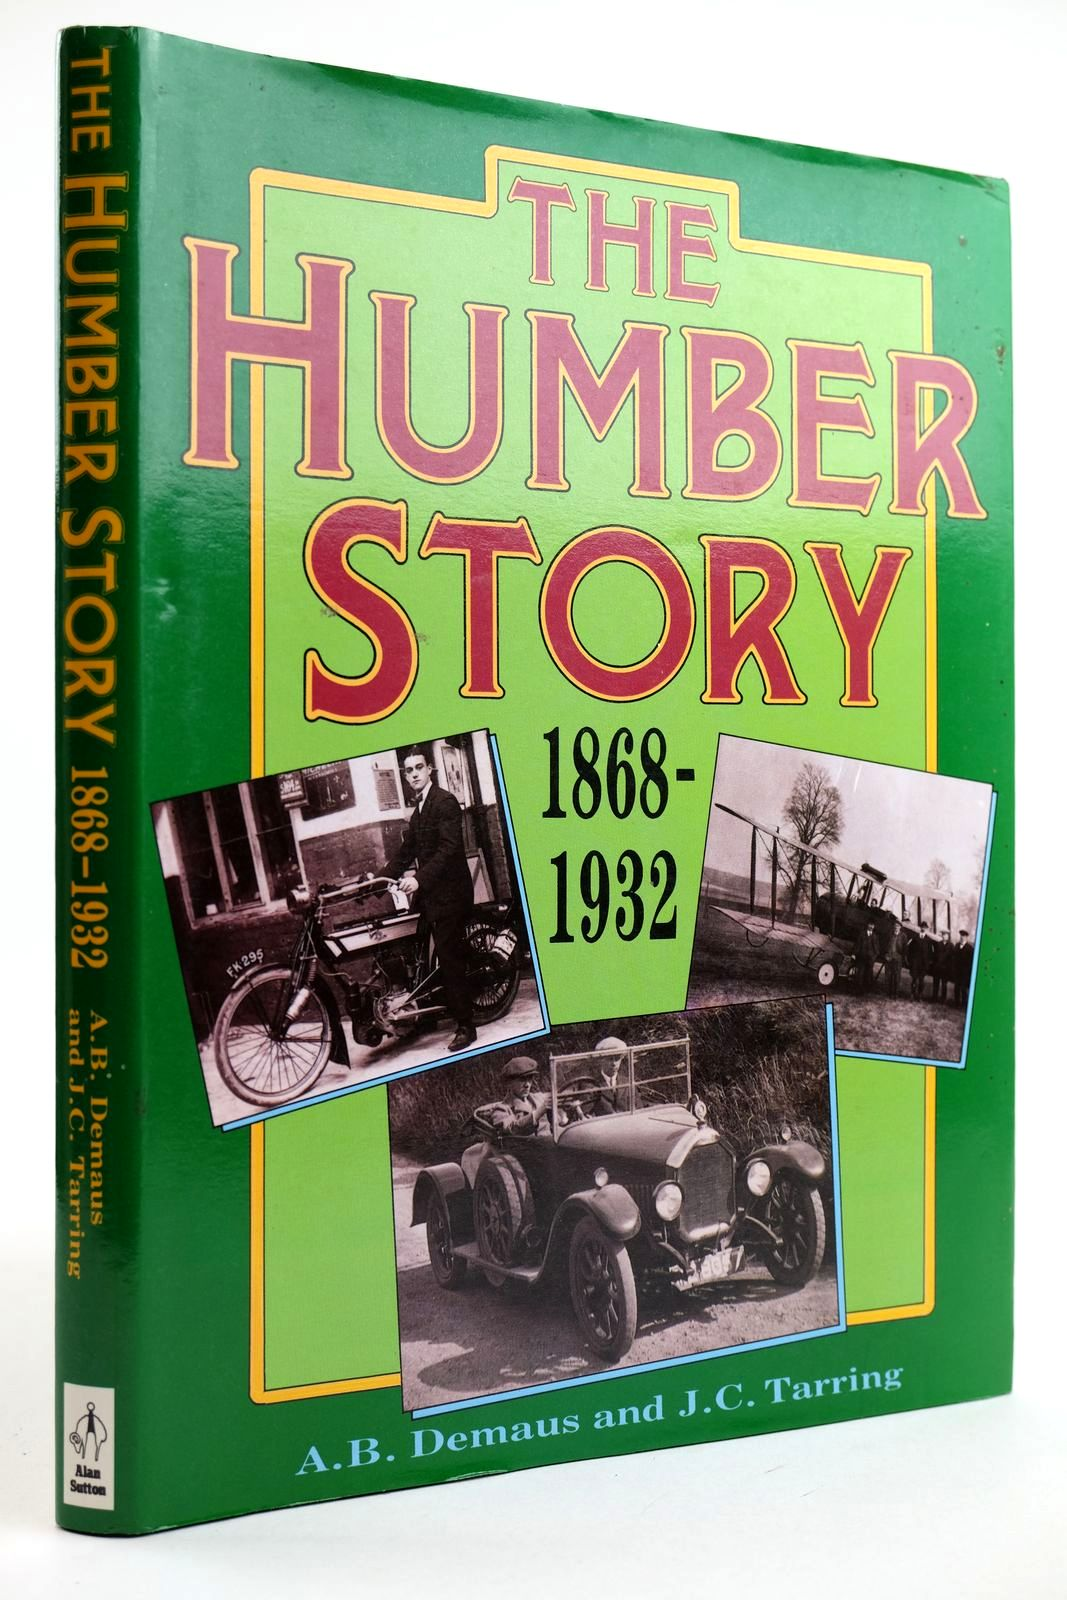 Photo of THE HUMBER STORY 1868-1932 written by Demaus, A.B. Tarring, J.C. published by Alan Sutton (STOCK CODE: 2132135)  for sale by Stella & Rose's Books